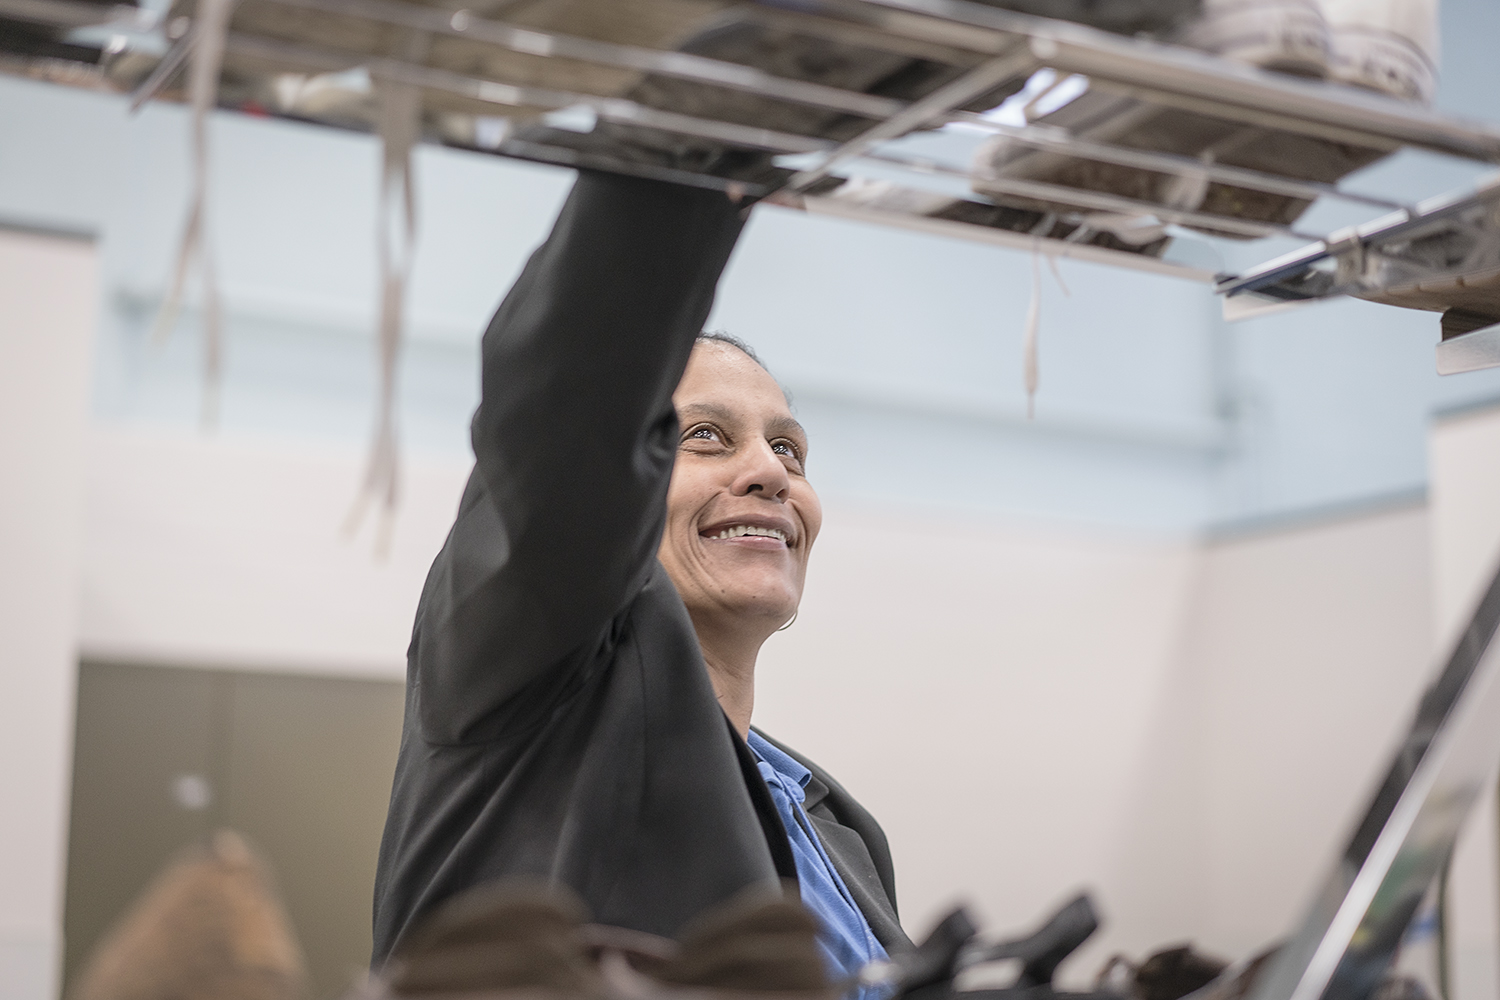 Flint, MI - Monday, December 18, 2017: Smiling as she works, Redonna Riggs, 47, of Flint, the Community Closet Coordinator at Catholic Charities Center for Hope assists clients from all backgrounds get necessities such as clothing and personal hygiene products.Tim Galloway for FlintSide